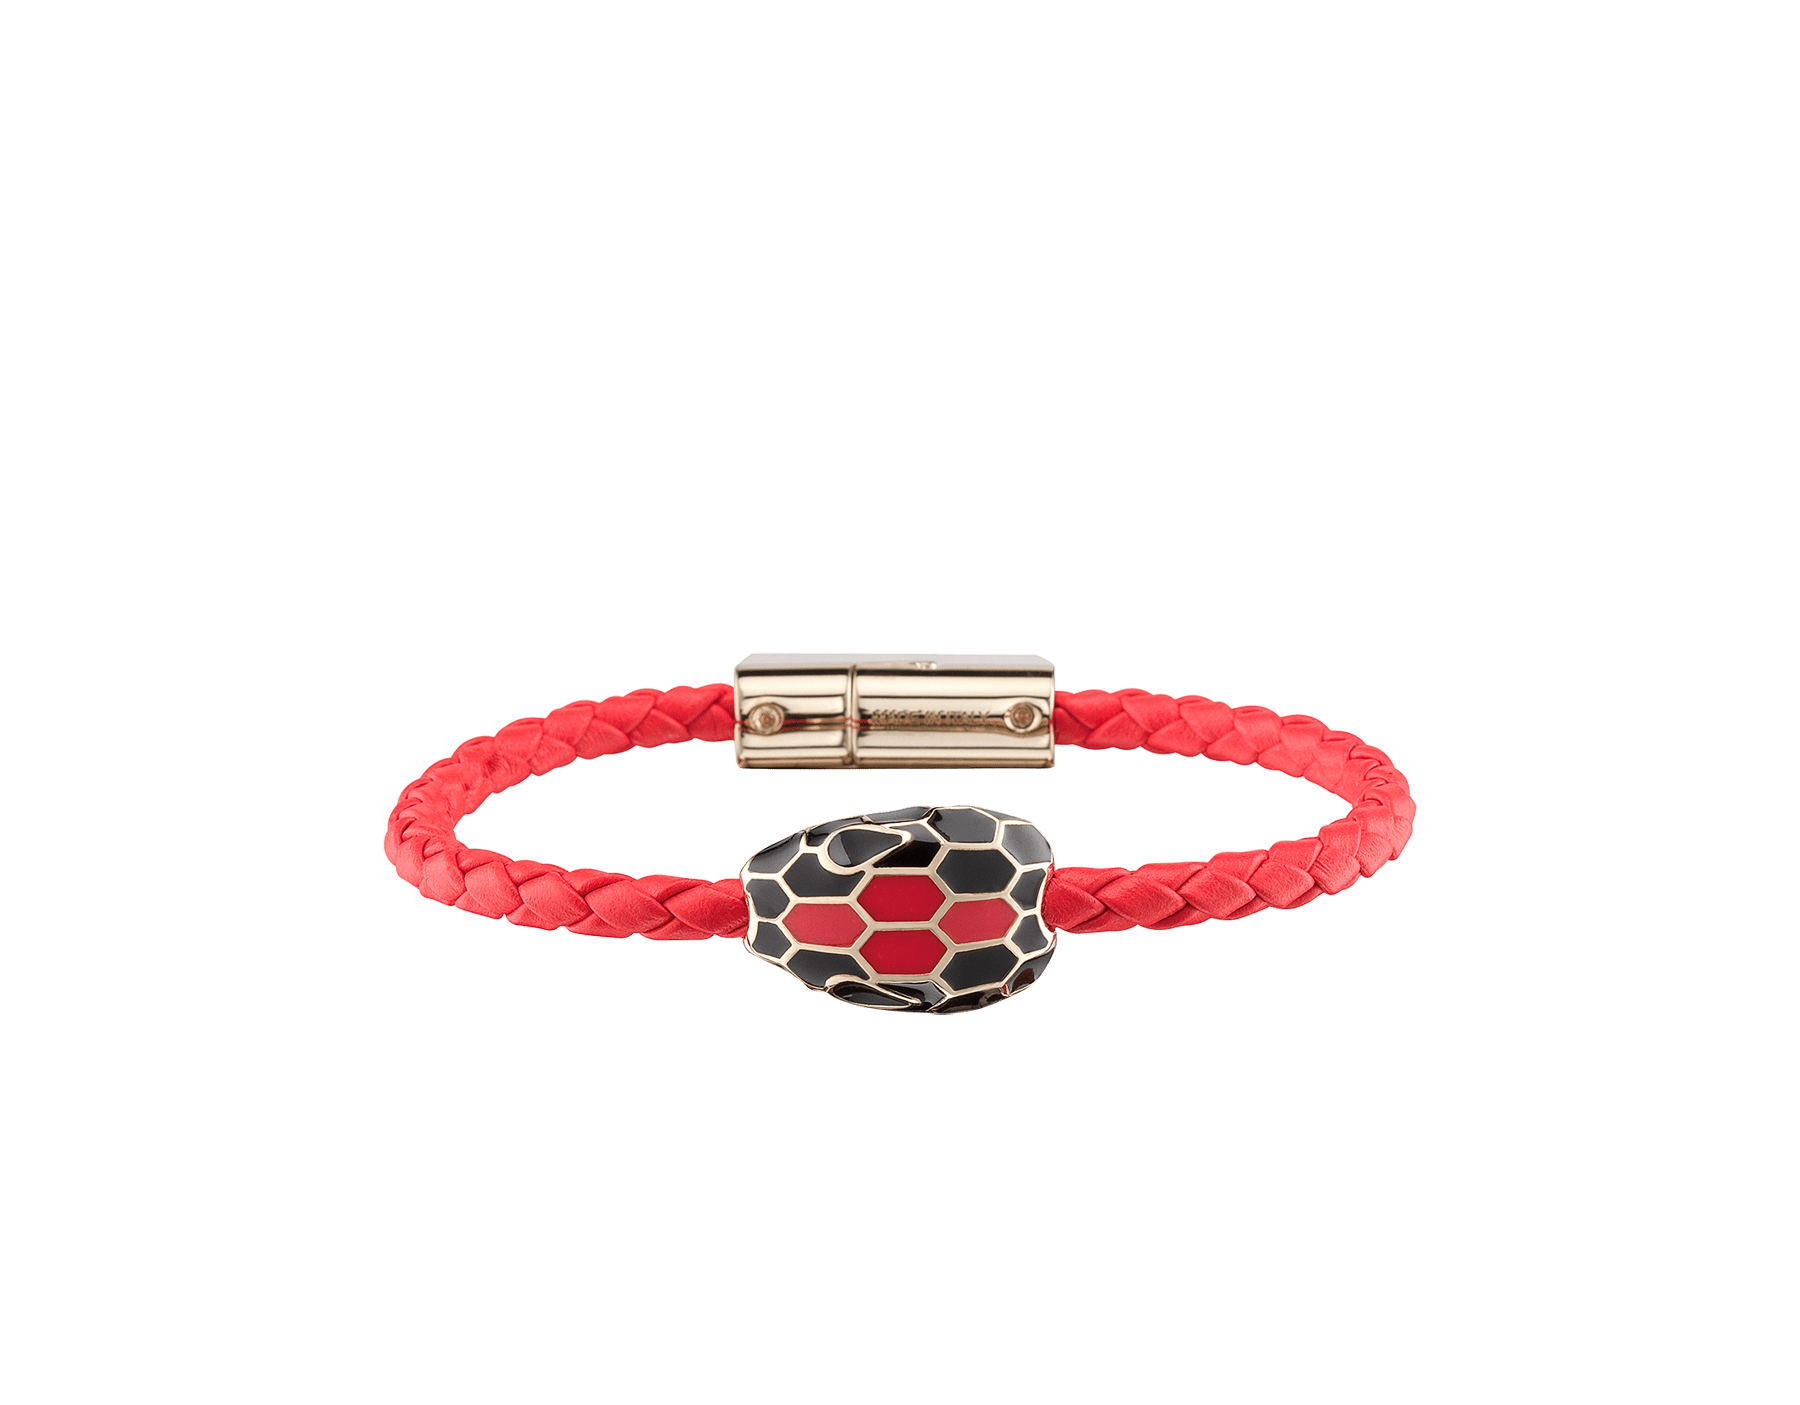 Serpenti Forever braid bracelet in sea star coral woven calf leather with an iconic snakehead décor in black and sea star coral enamel. 288323 image 1